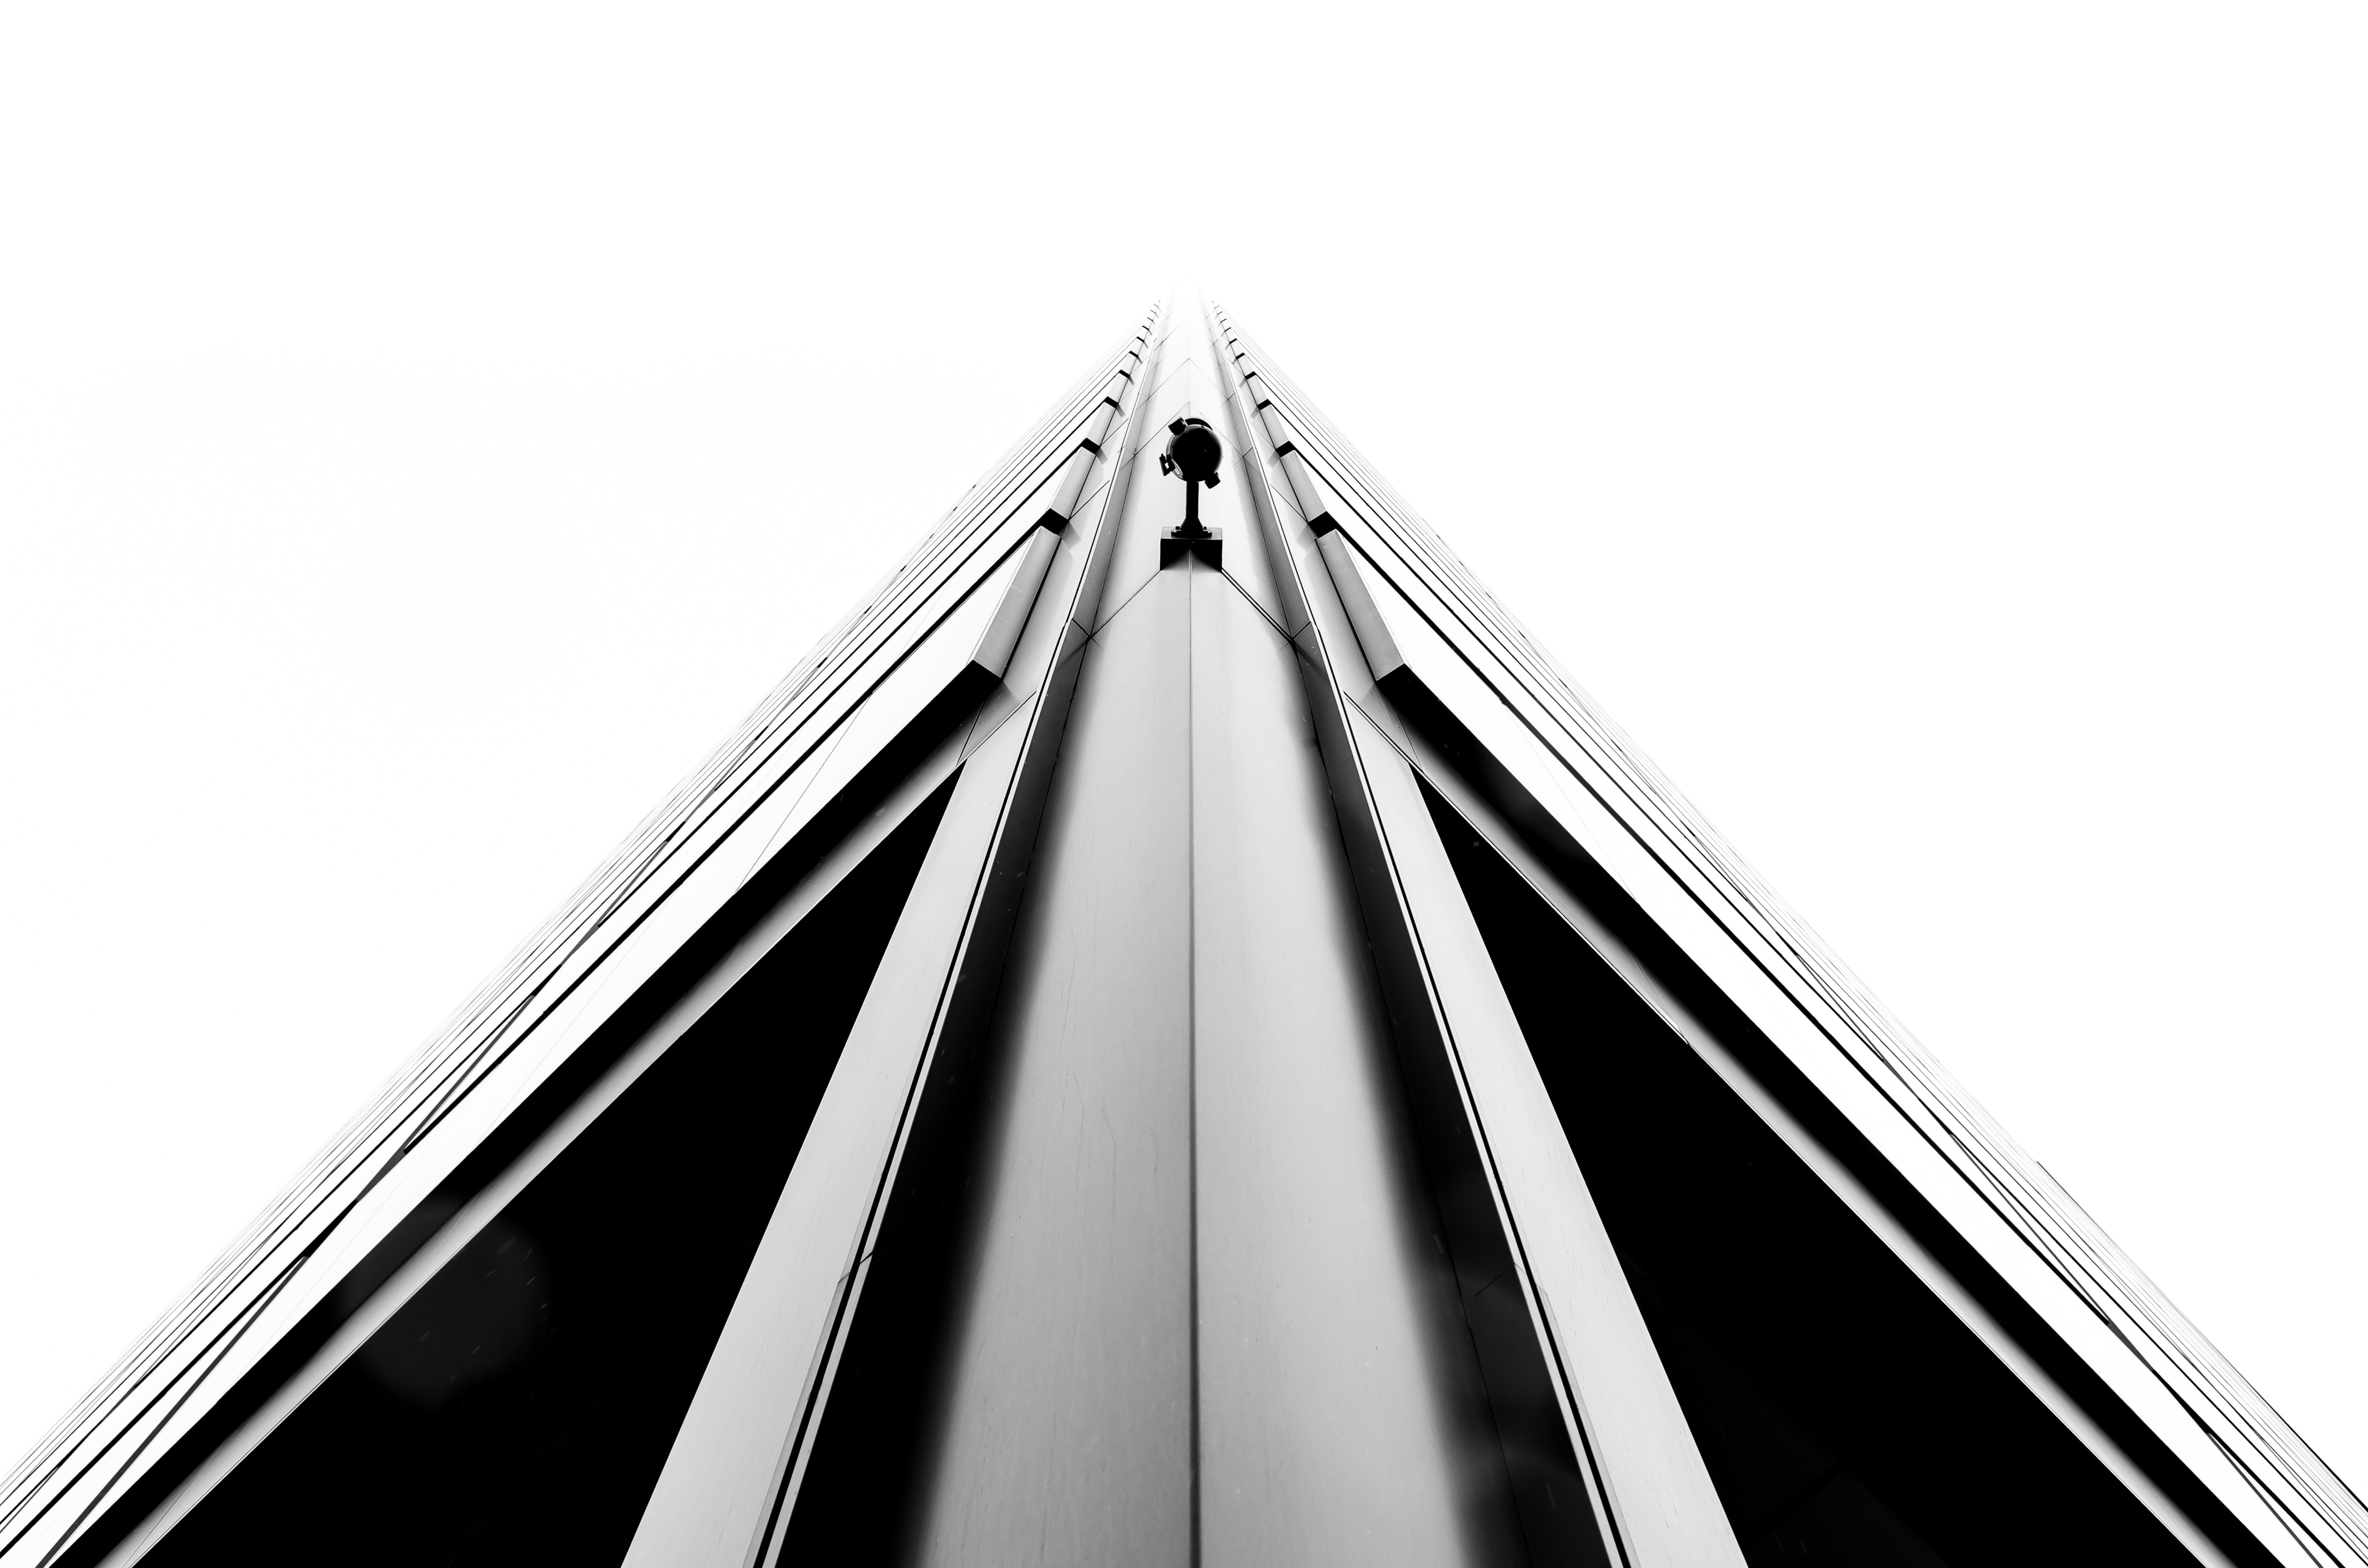 A monochrome shot of a sharp edge on a corner of a tall building